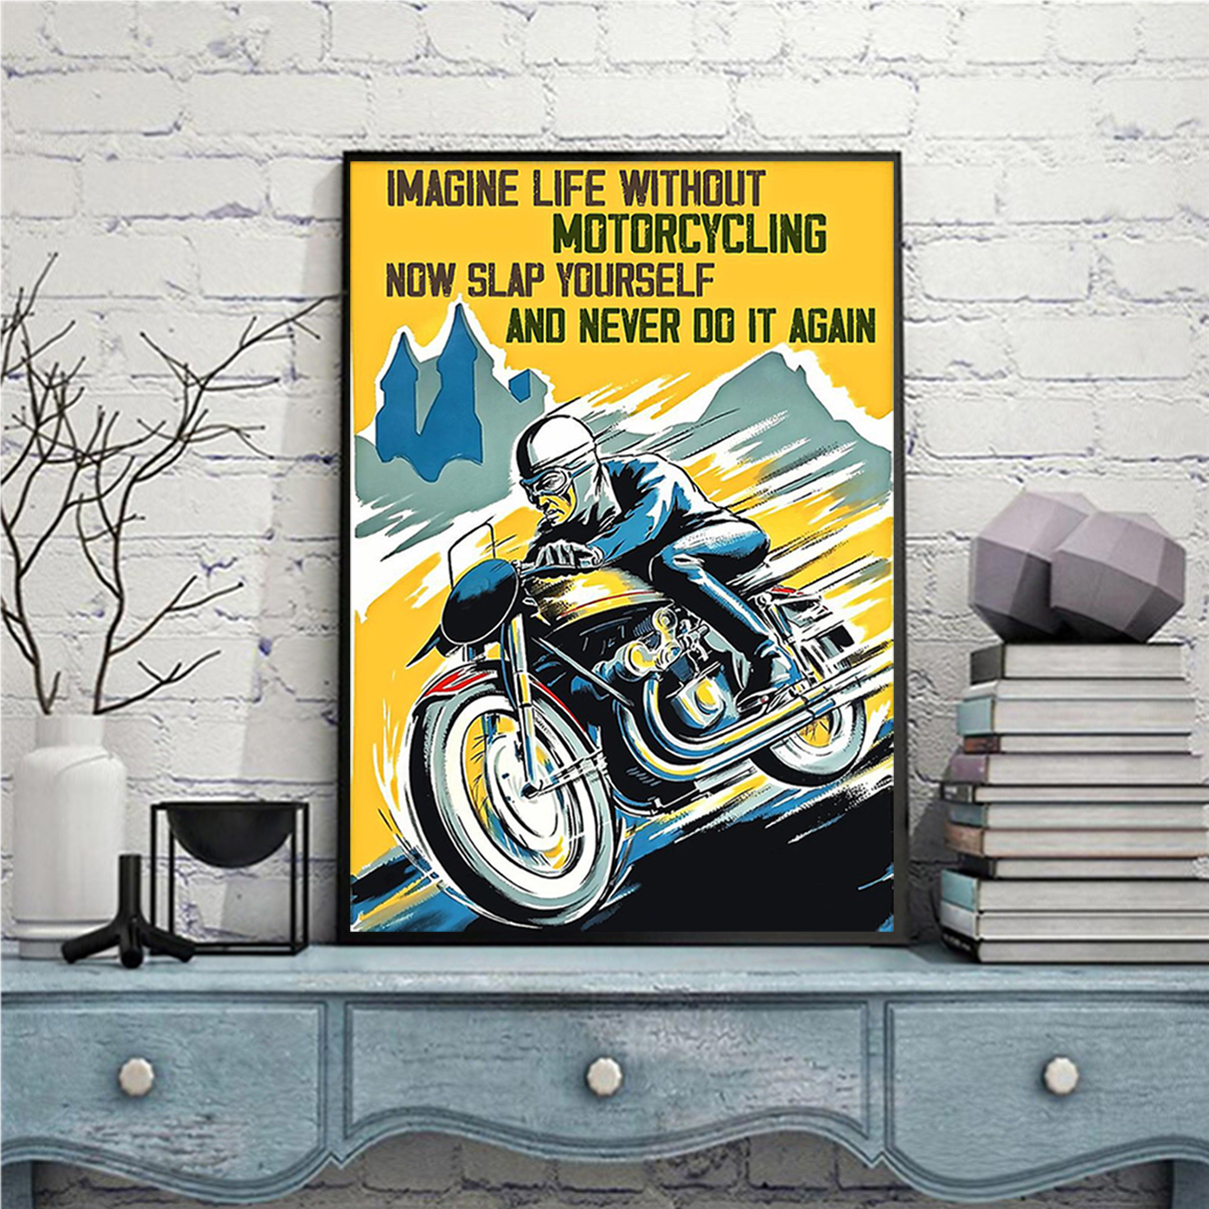 Imagine life without motorcycling now slap yourself and never do it again poster A3